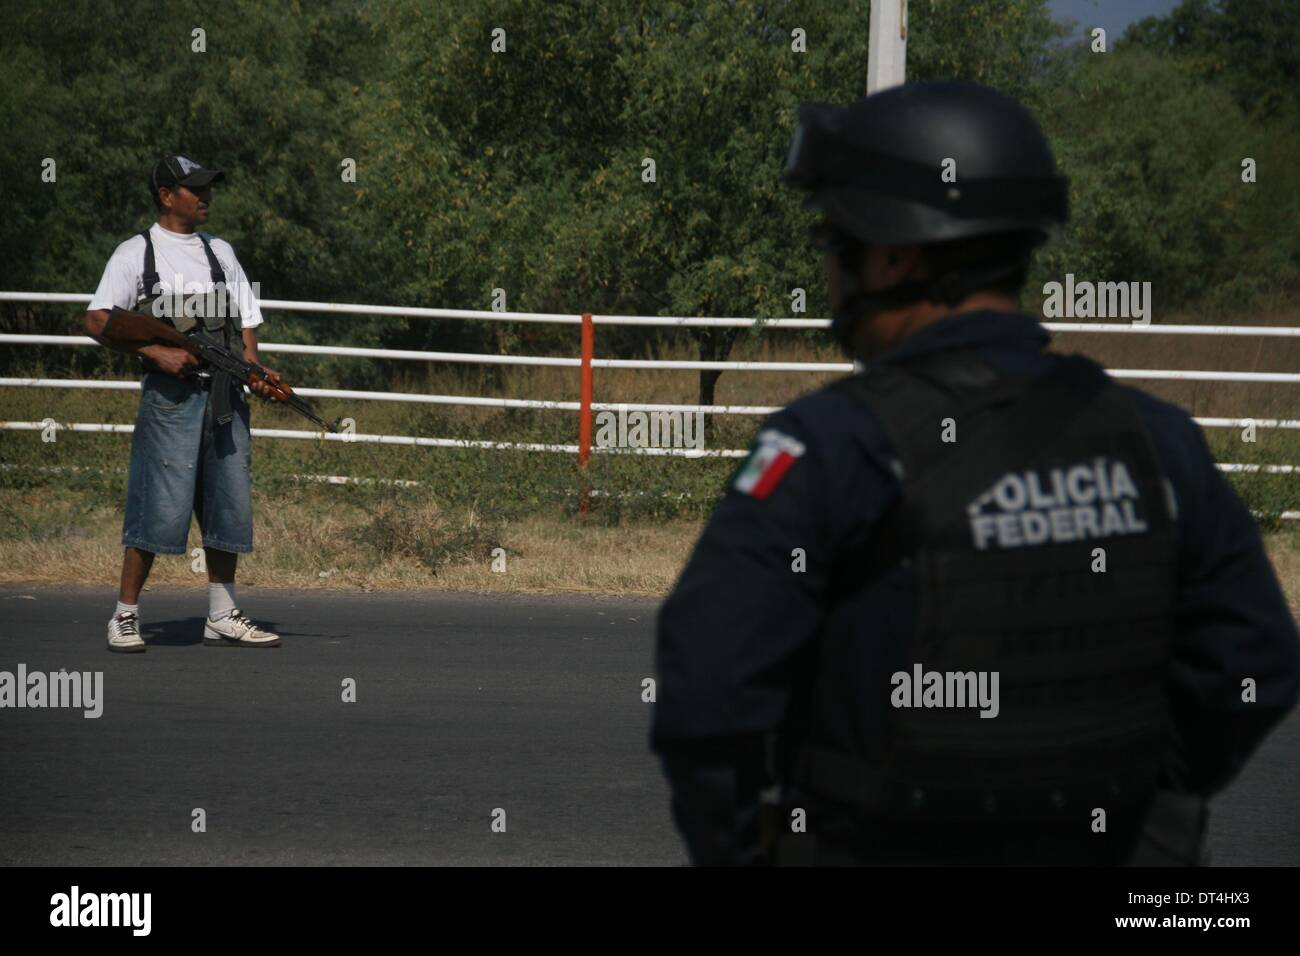 Michoacan, Mexico. 8th Feb, 2014. Federal Police officers and members of self-defense groups stands guard at a check point on a road to the municipality of Apatzingan, in Michoacan, Mexico, on Feb. 8, 2014. Members of self-defense groups entered Apatzingan on Saturday accompanied by the Mexican Army and Federal Police to take control of the town that has been affected by the actions of the criminal organization 'Los Caballeros Templarios', according to the local press. © Armando Solis/Xinhua/Alamy Live News - Stock Image